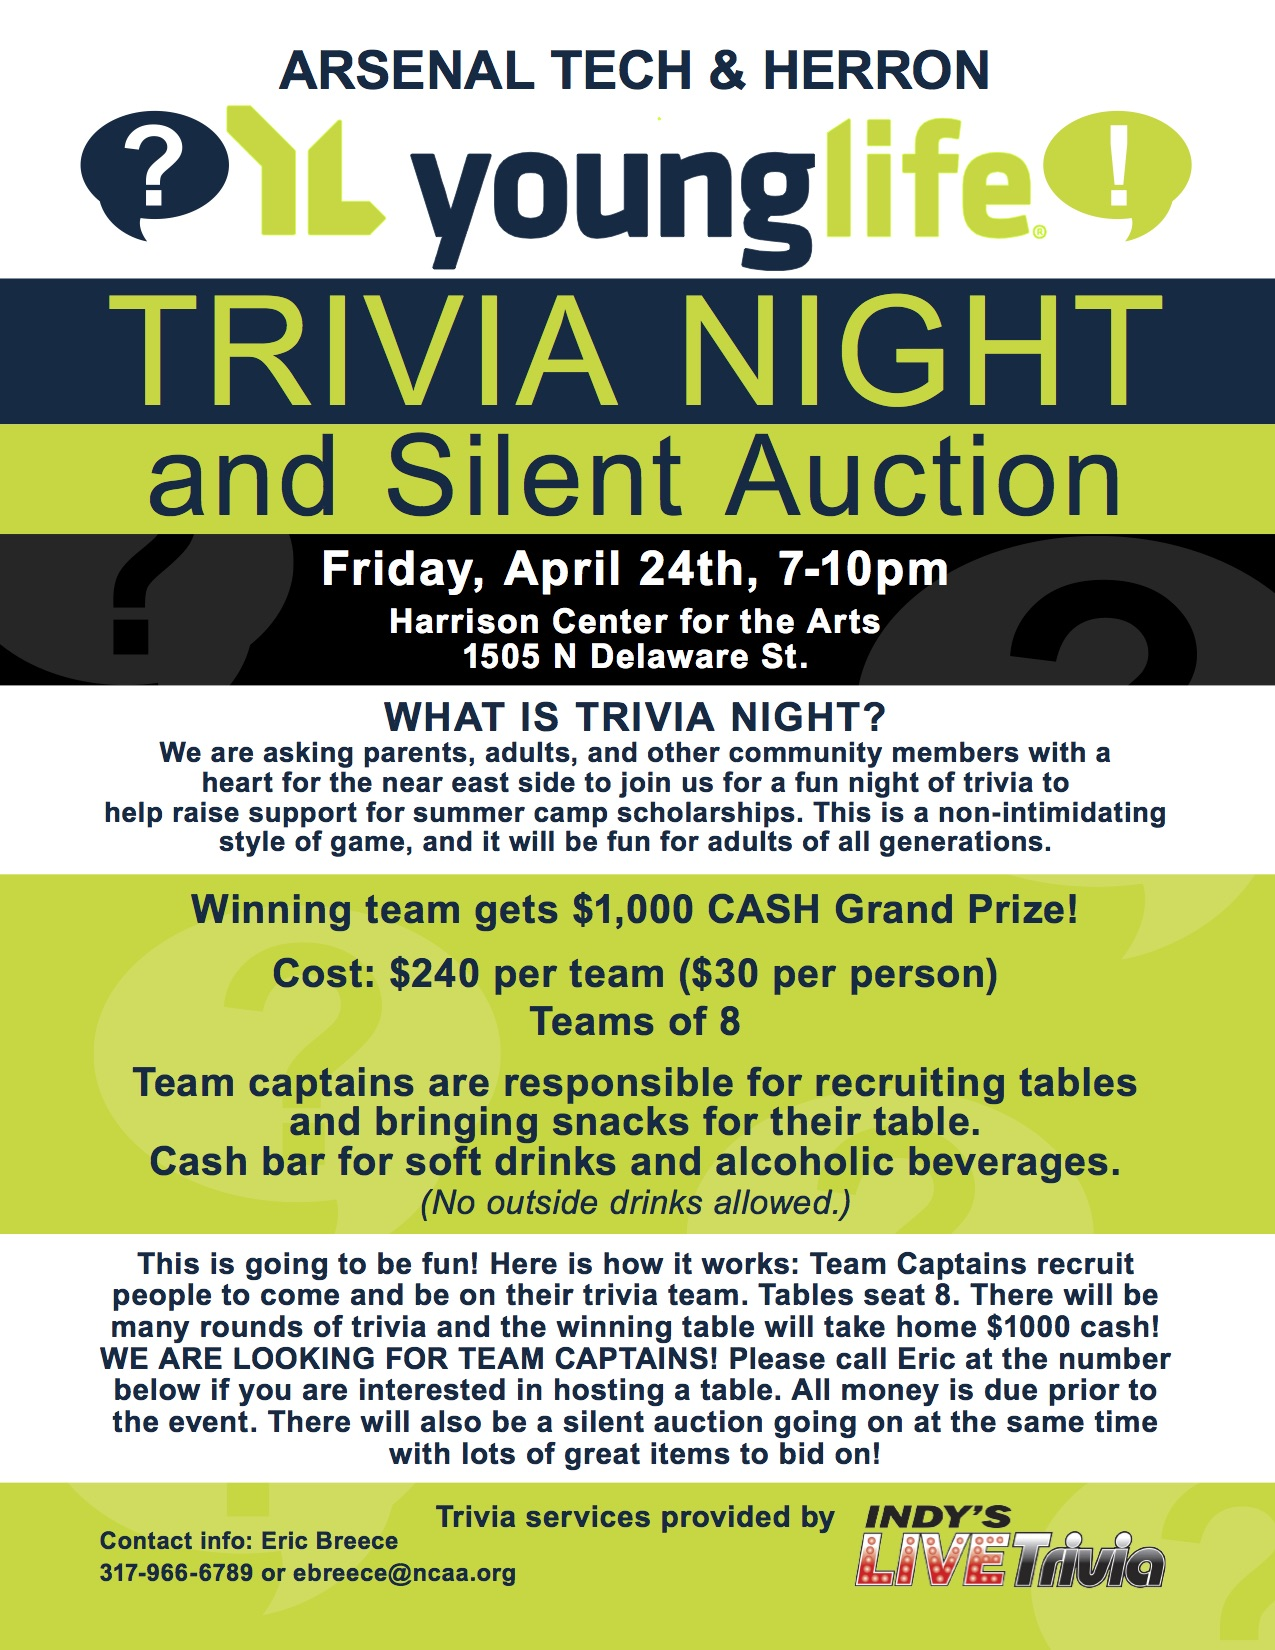 YL_Trivia_Night_Flyer_2015